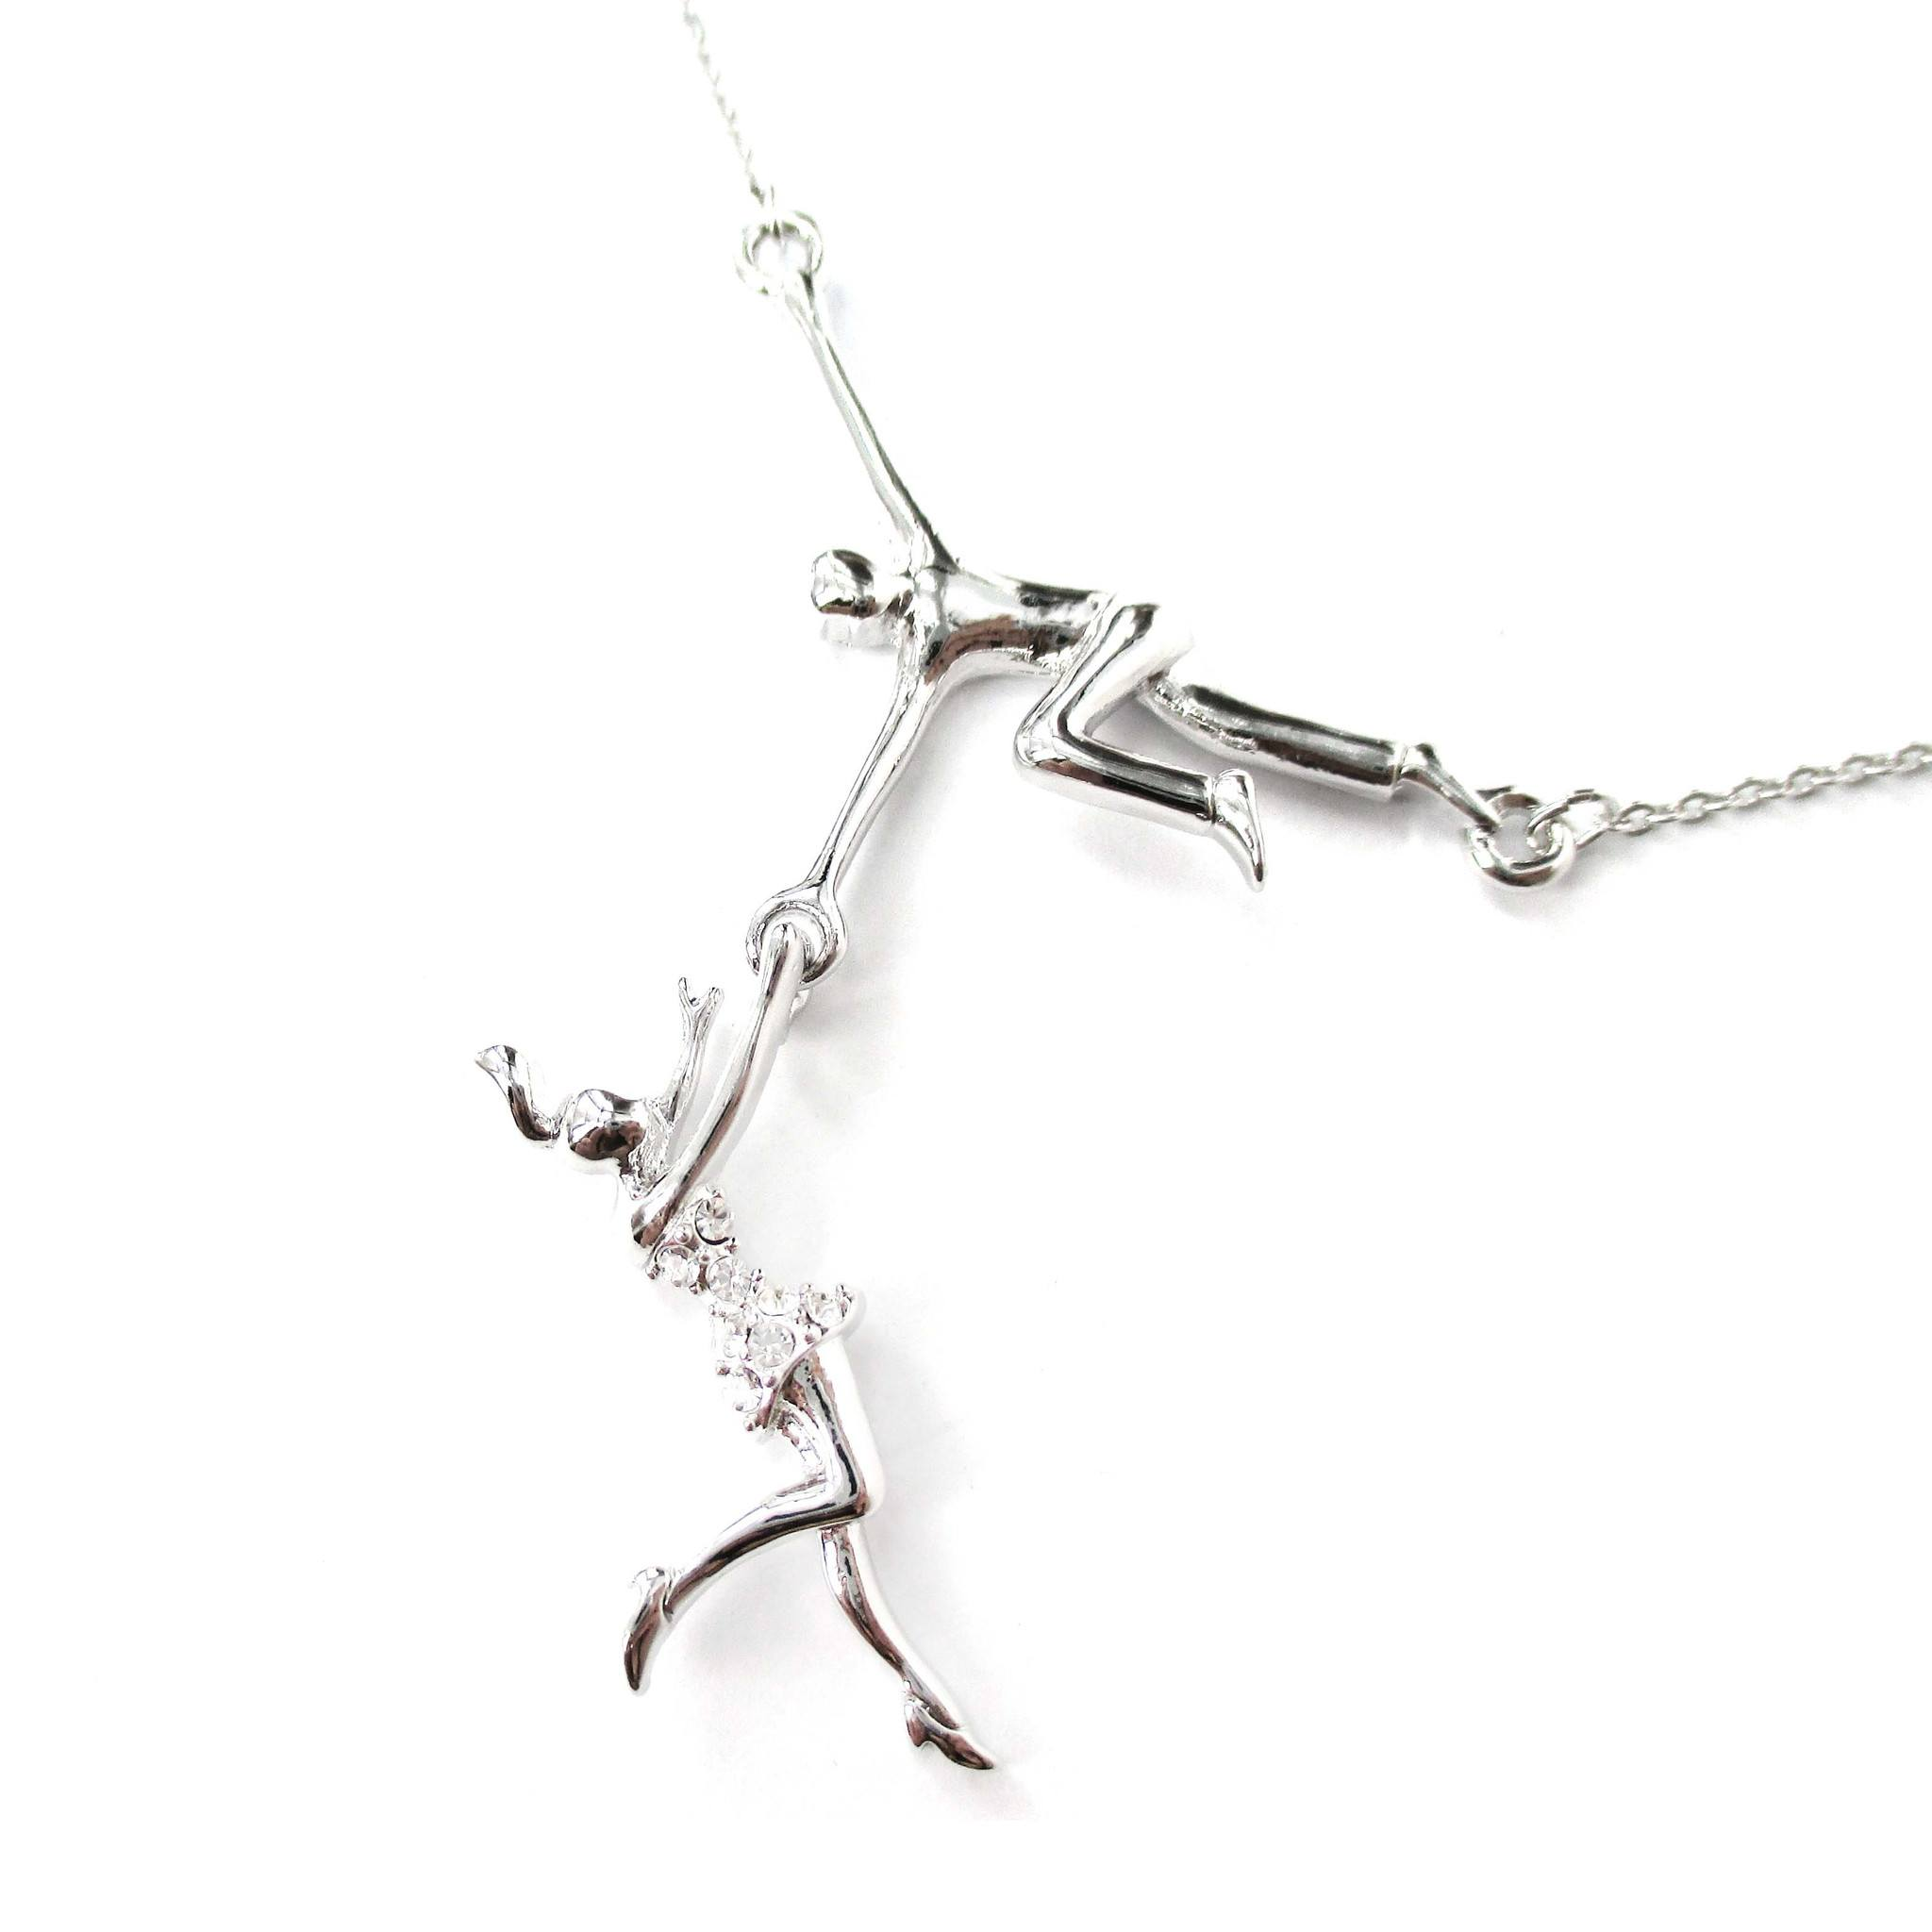 Trapeze Acrobat Pendant Circus Themed Necklace in Silver